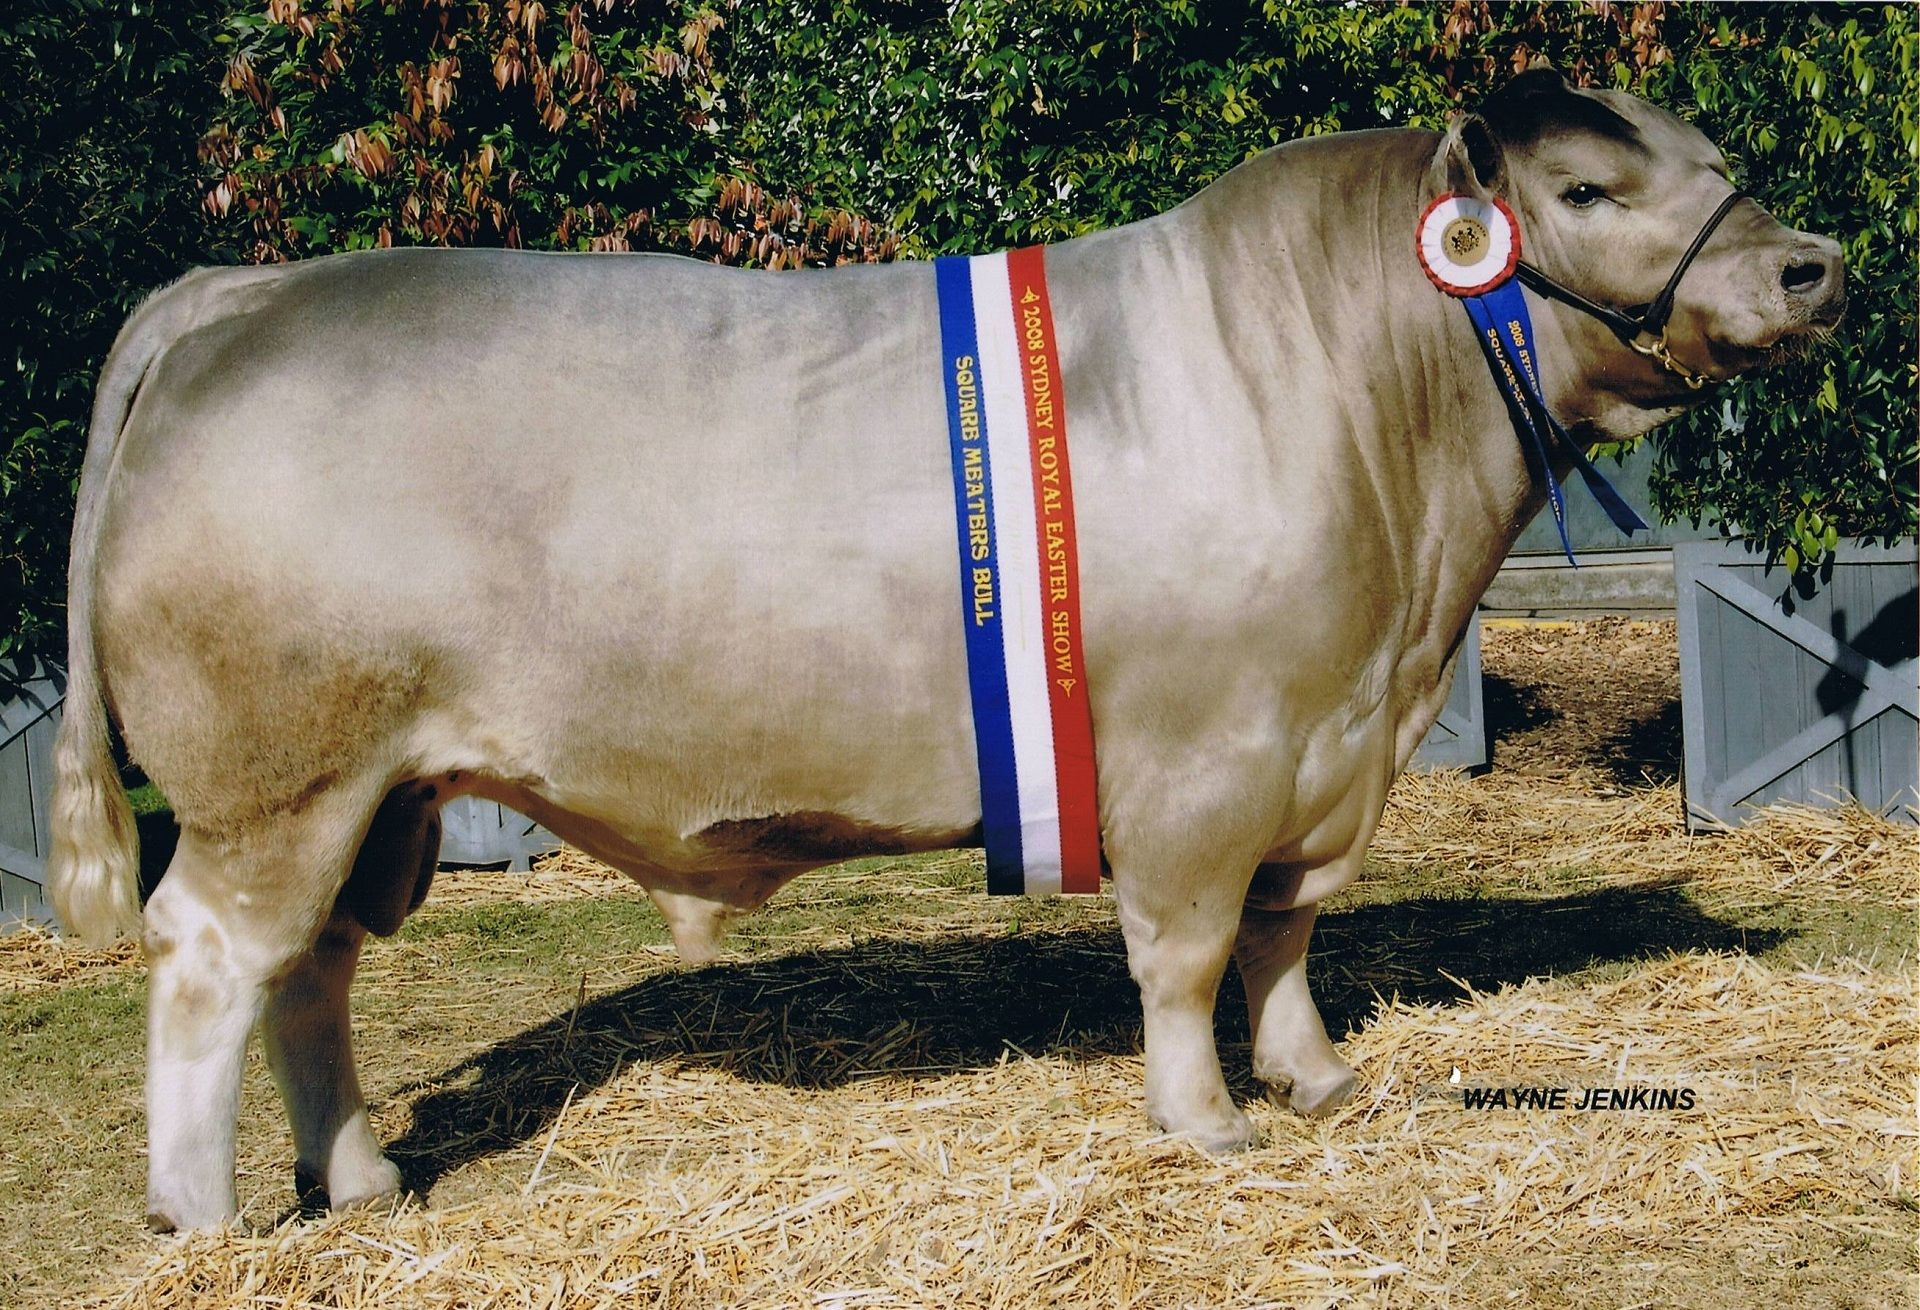 square meaters bull brinsley anzac cattle pinterest cattle